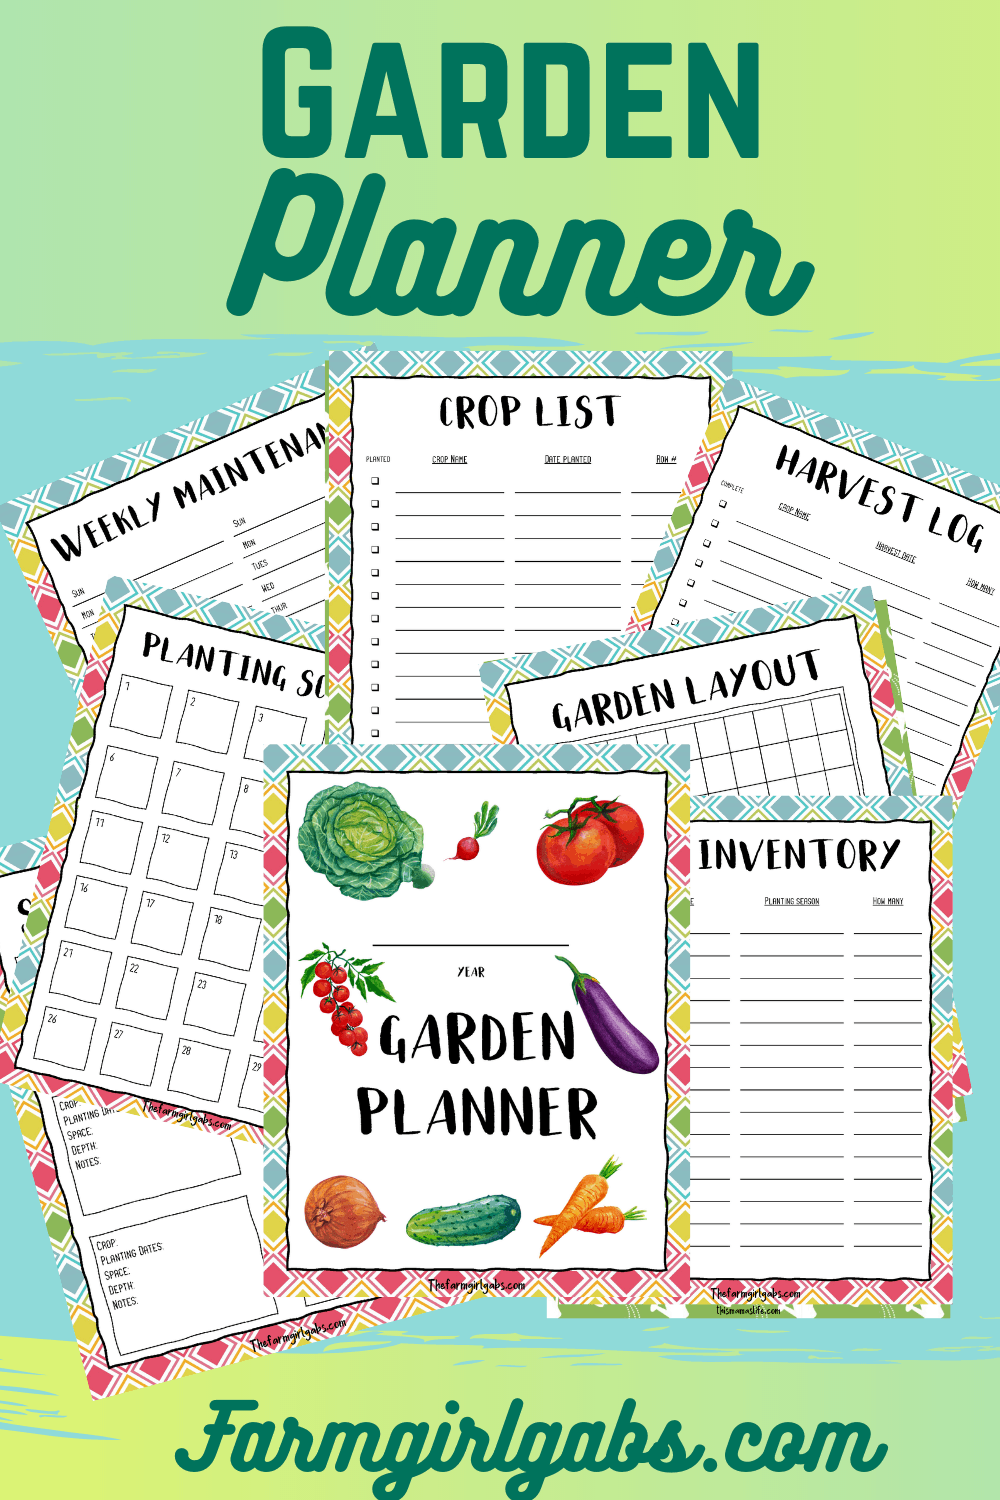 Ready, set, dig! This Ultimate Printable Garden Planner will help you plan your vegetable garden for the season. This gardening guide will help you plan your garden from start to finish.